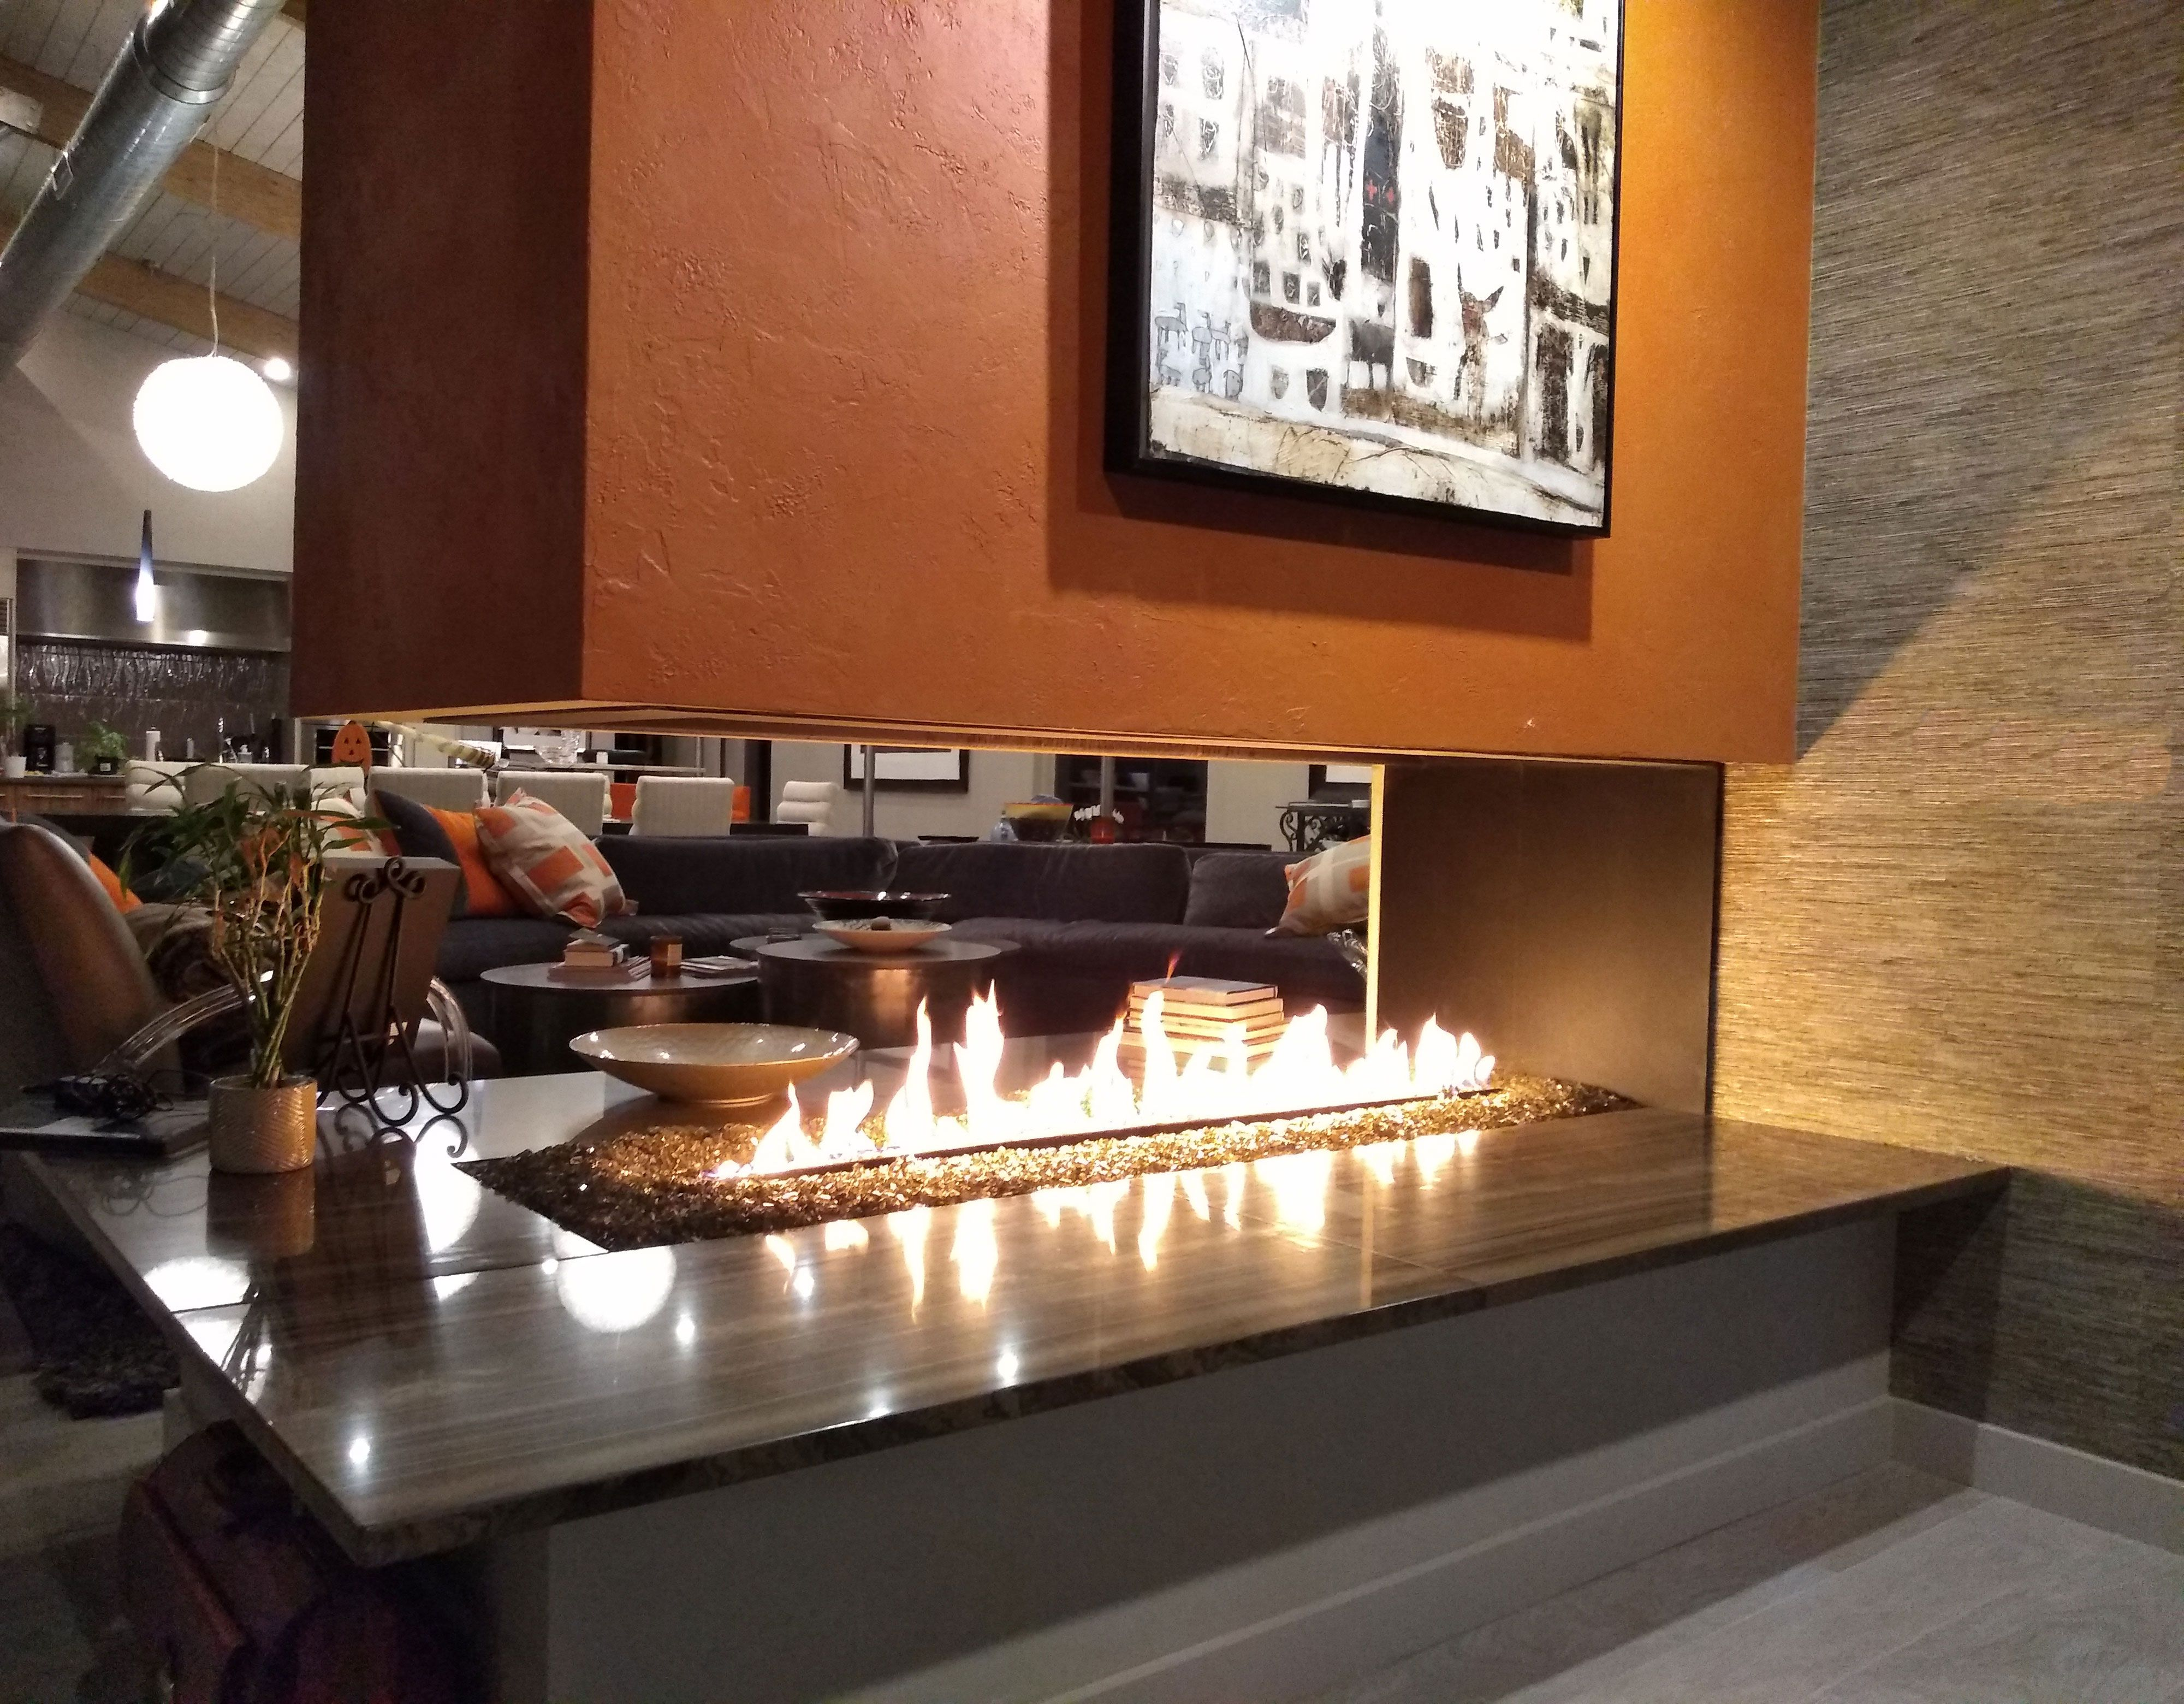 Simple And Quick Instructions On How To Clean The Inside Glass On A Gas Fireplace Glass Fireplace Gas Fireplace Gas Fireplace Insert